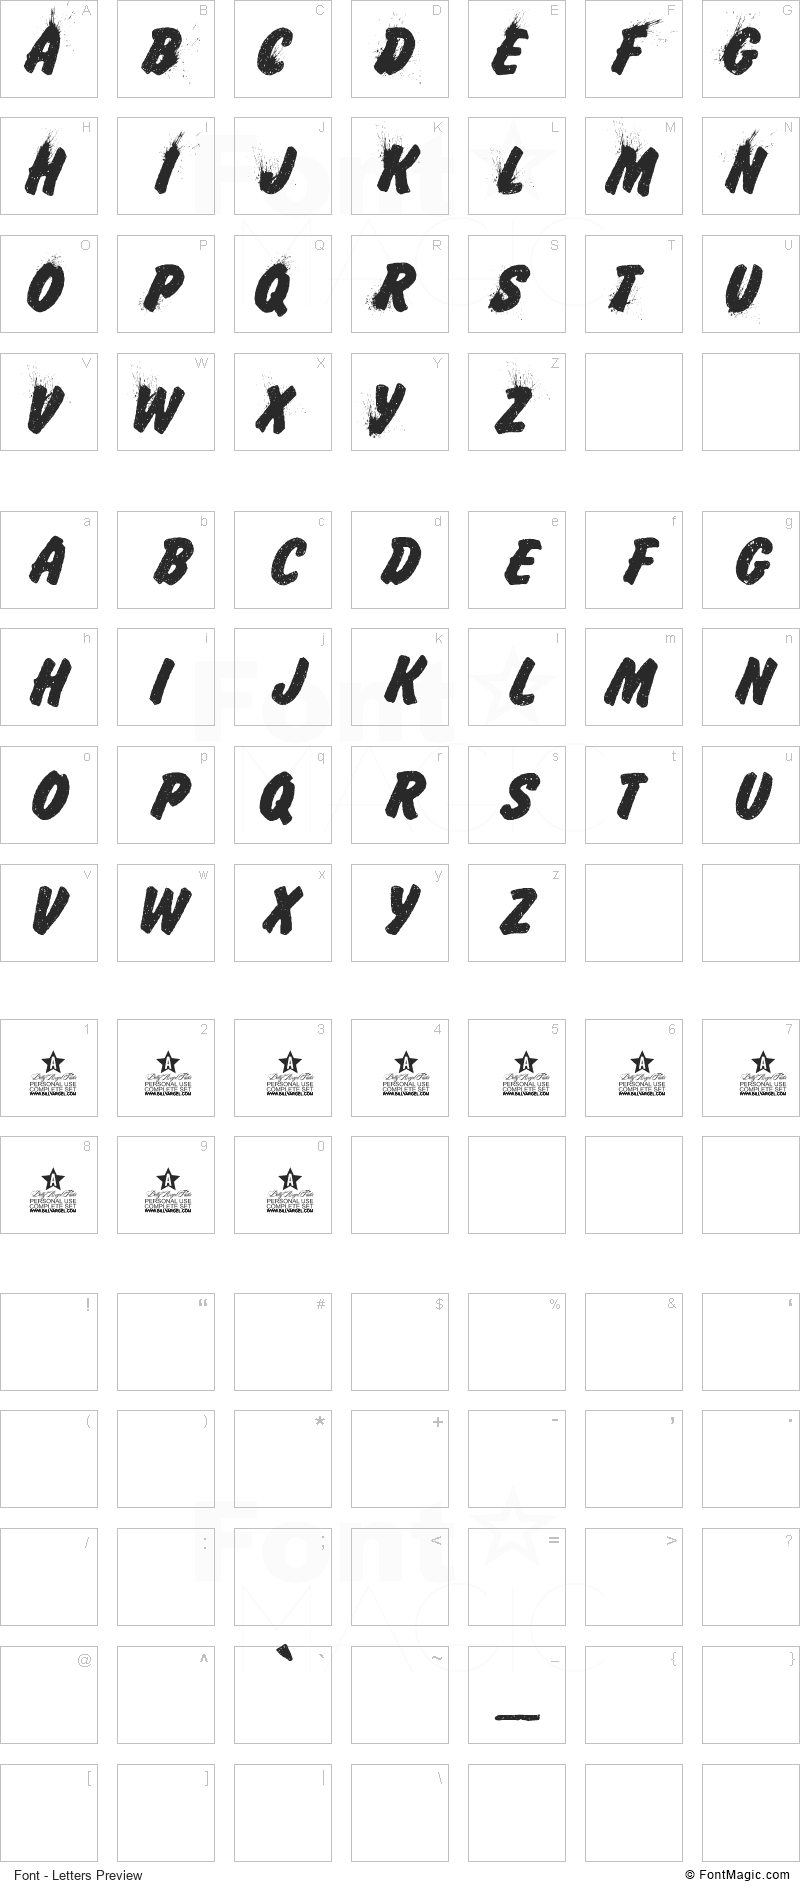 Iceland Font - All Latters Preview Chart